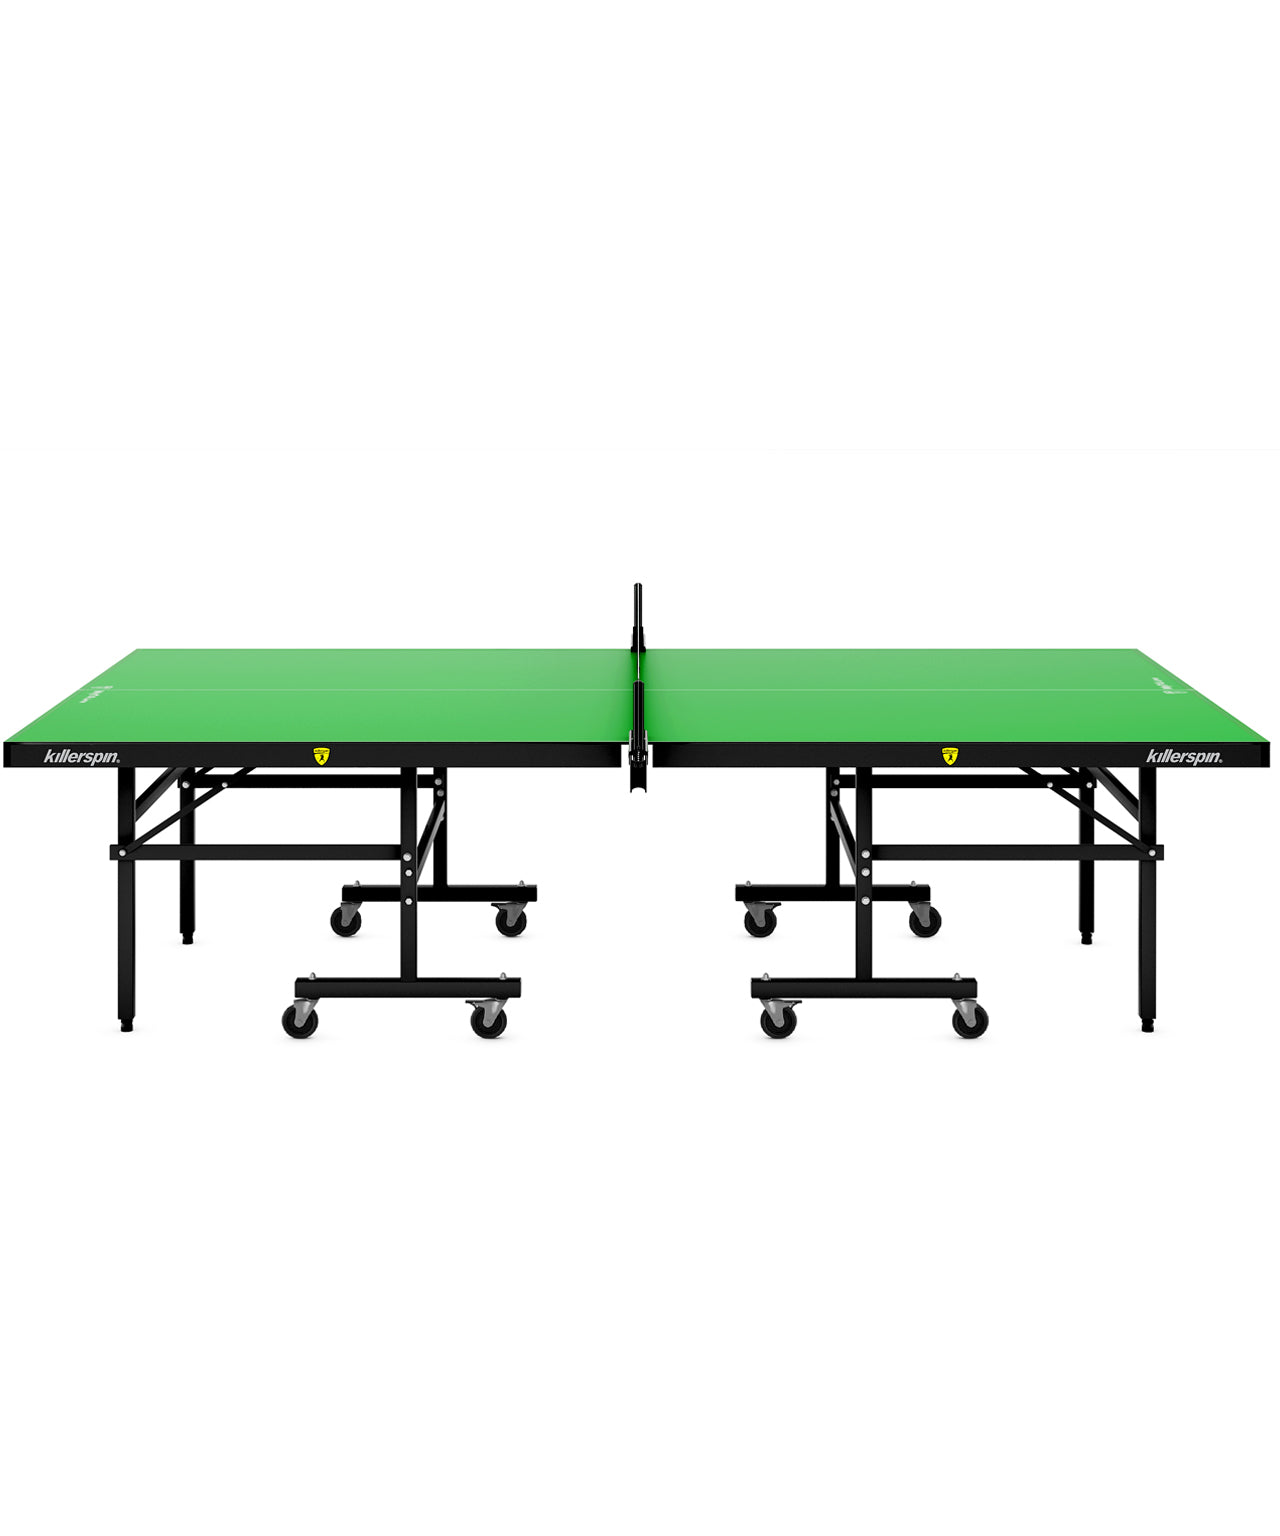 Killerspin MyT Ping Pong Table MyT4 Lime - Frame